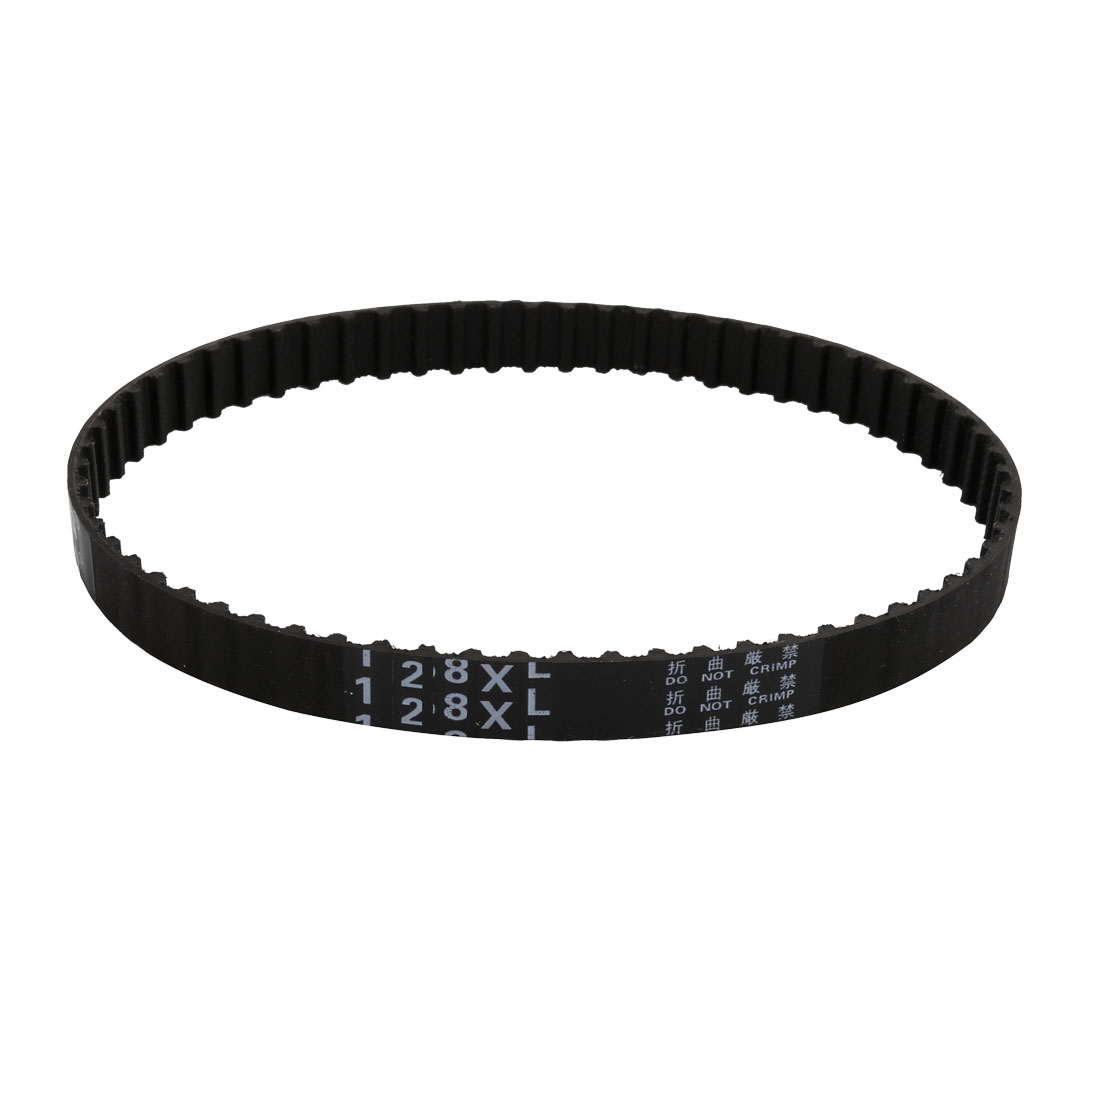 128XL 64 Teeth 10mm Width 5.08mm Pitch Stepper Motor Rubber Timing Belt Black